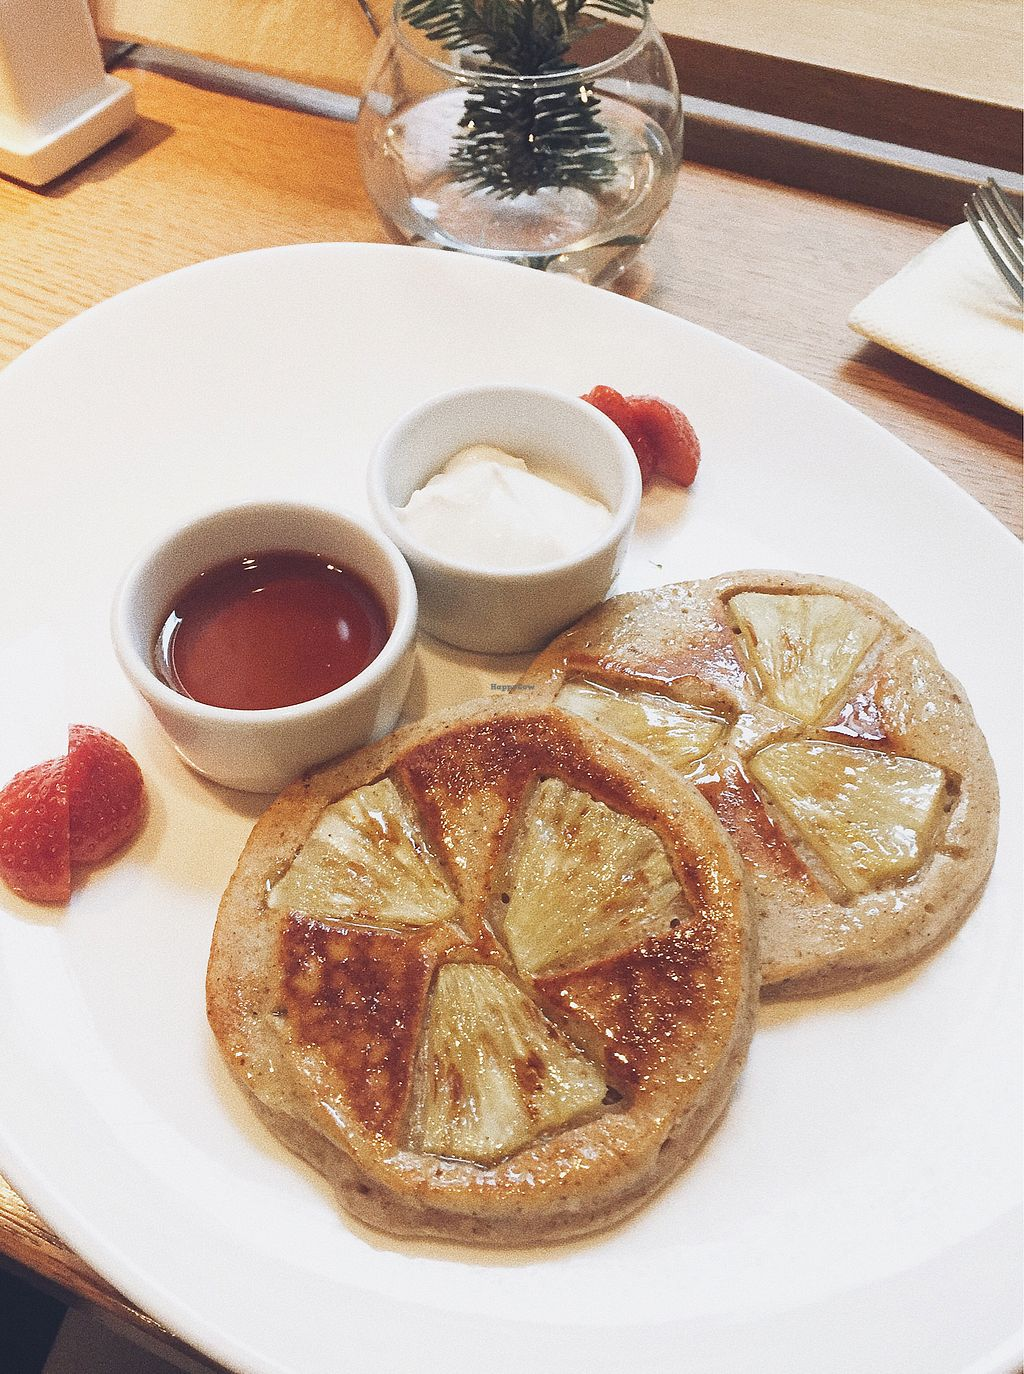 """Photo of Fresh - Patriarshih  by <a href=""""/members/profile/Evgenia"""">Evgenia</a> <br/>pancakes with maple syrup  <br/> December 9, 2017  - <a href='/contact/abuse/image/85034/333846'>Report</a>"""